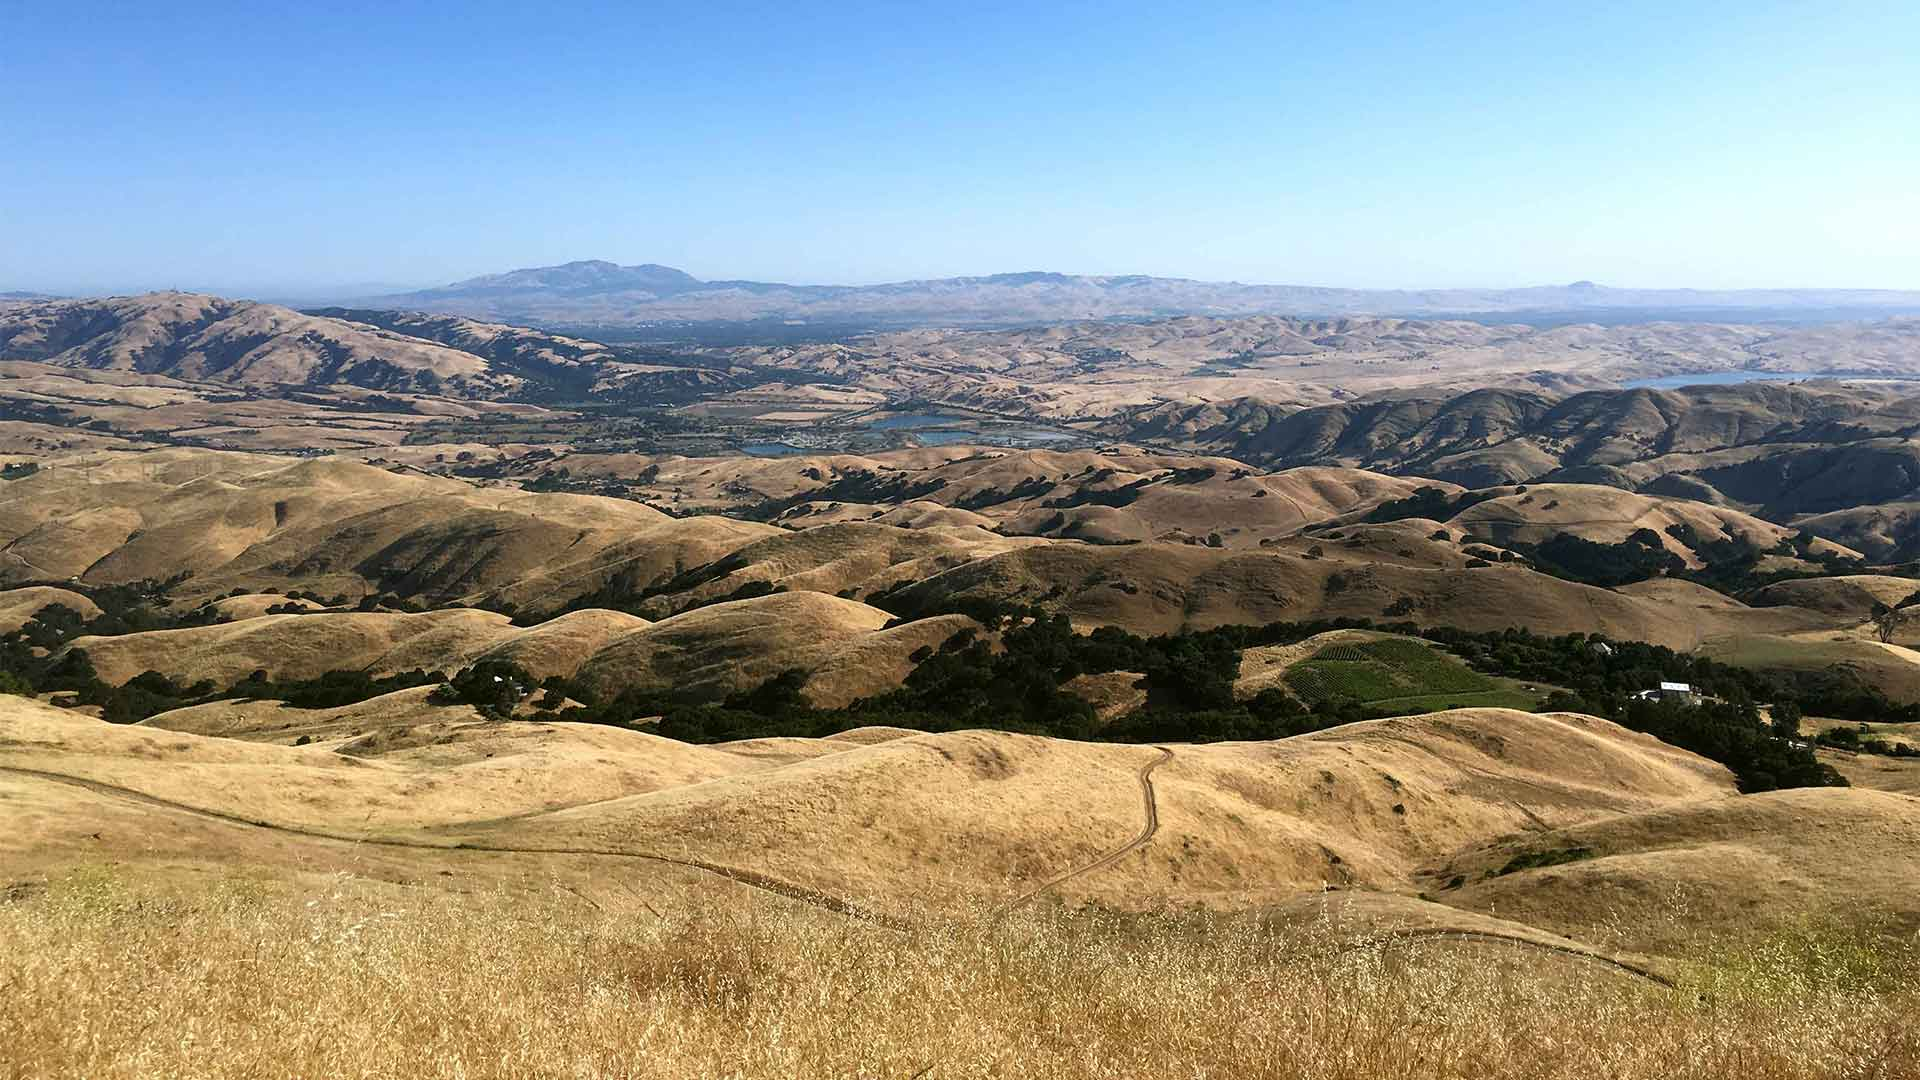 Photos from To Mission Peak 31